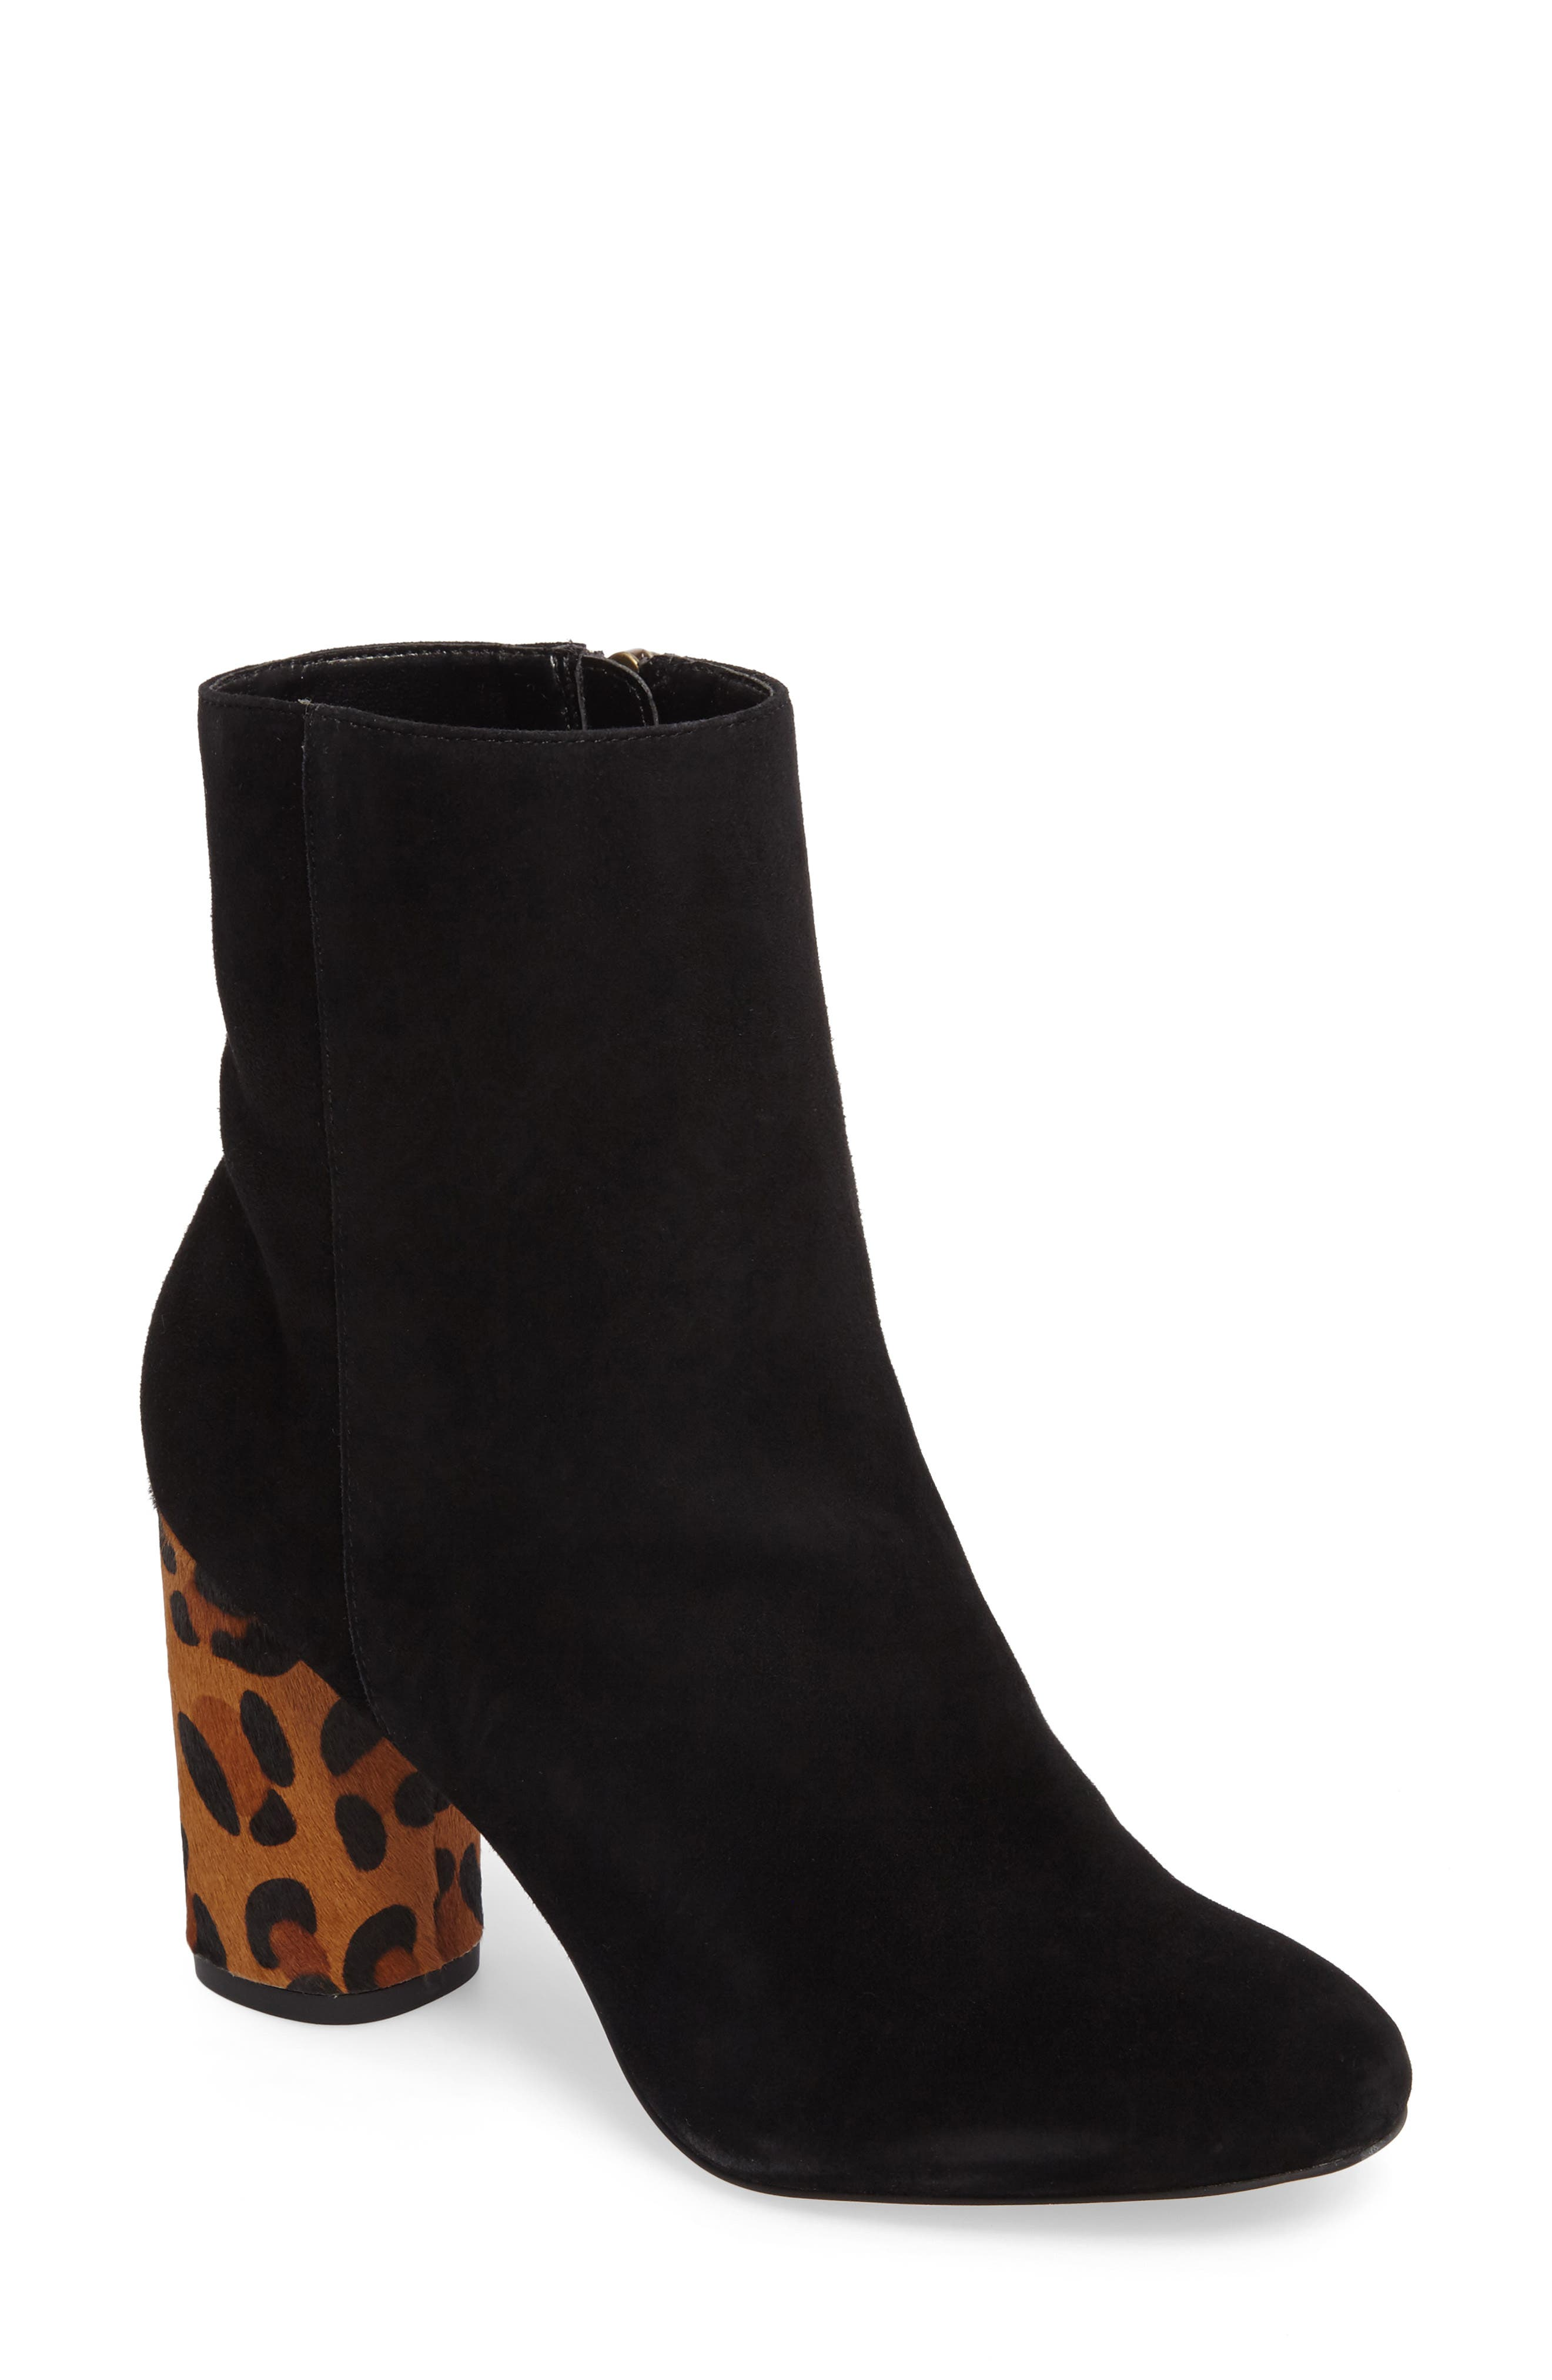 Mulholland Embroidered Boot,                         Main,                         color, Black With Leopard Heel